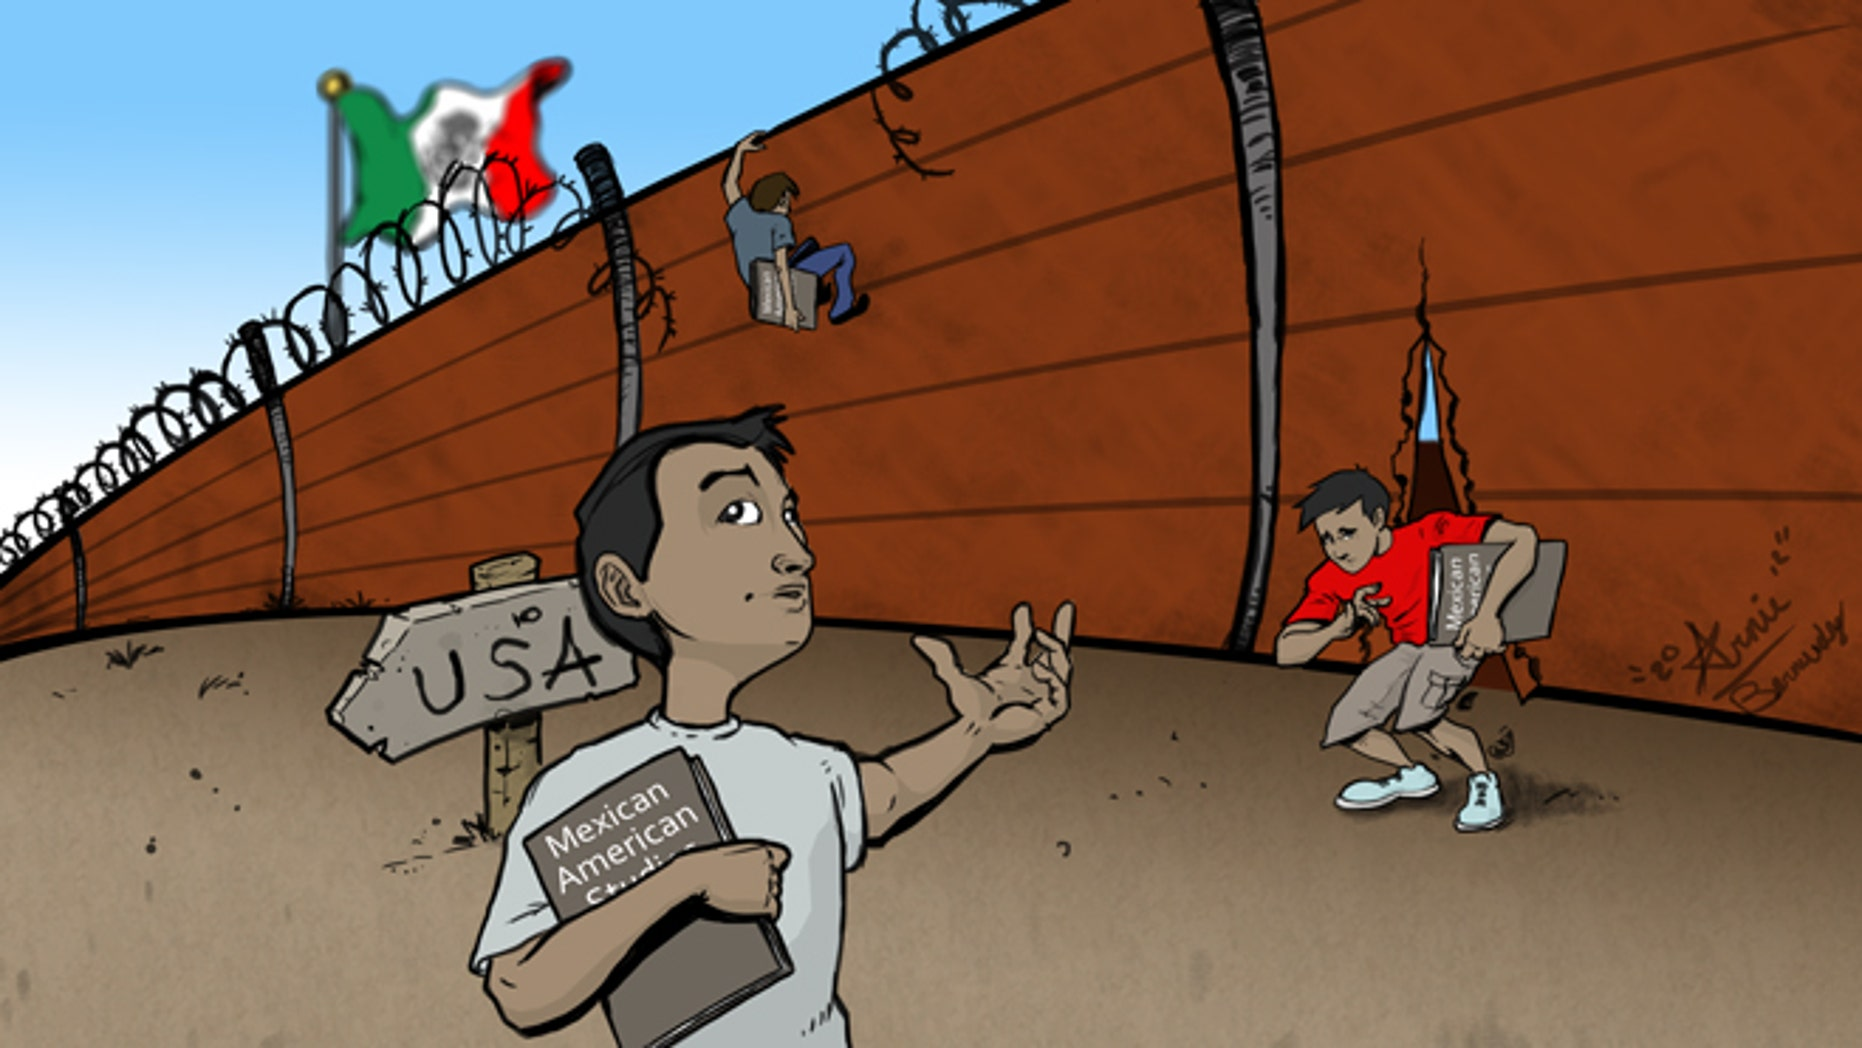 This is an illustration comparing crossing the border to the plight of Mexican American studies supporters who want to get the books and curriculum back into the TUSD.